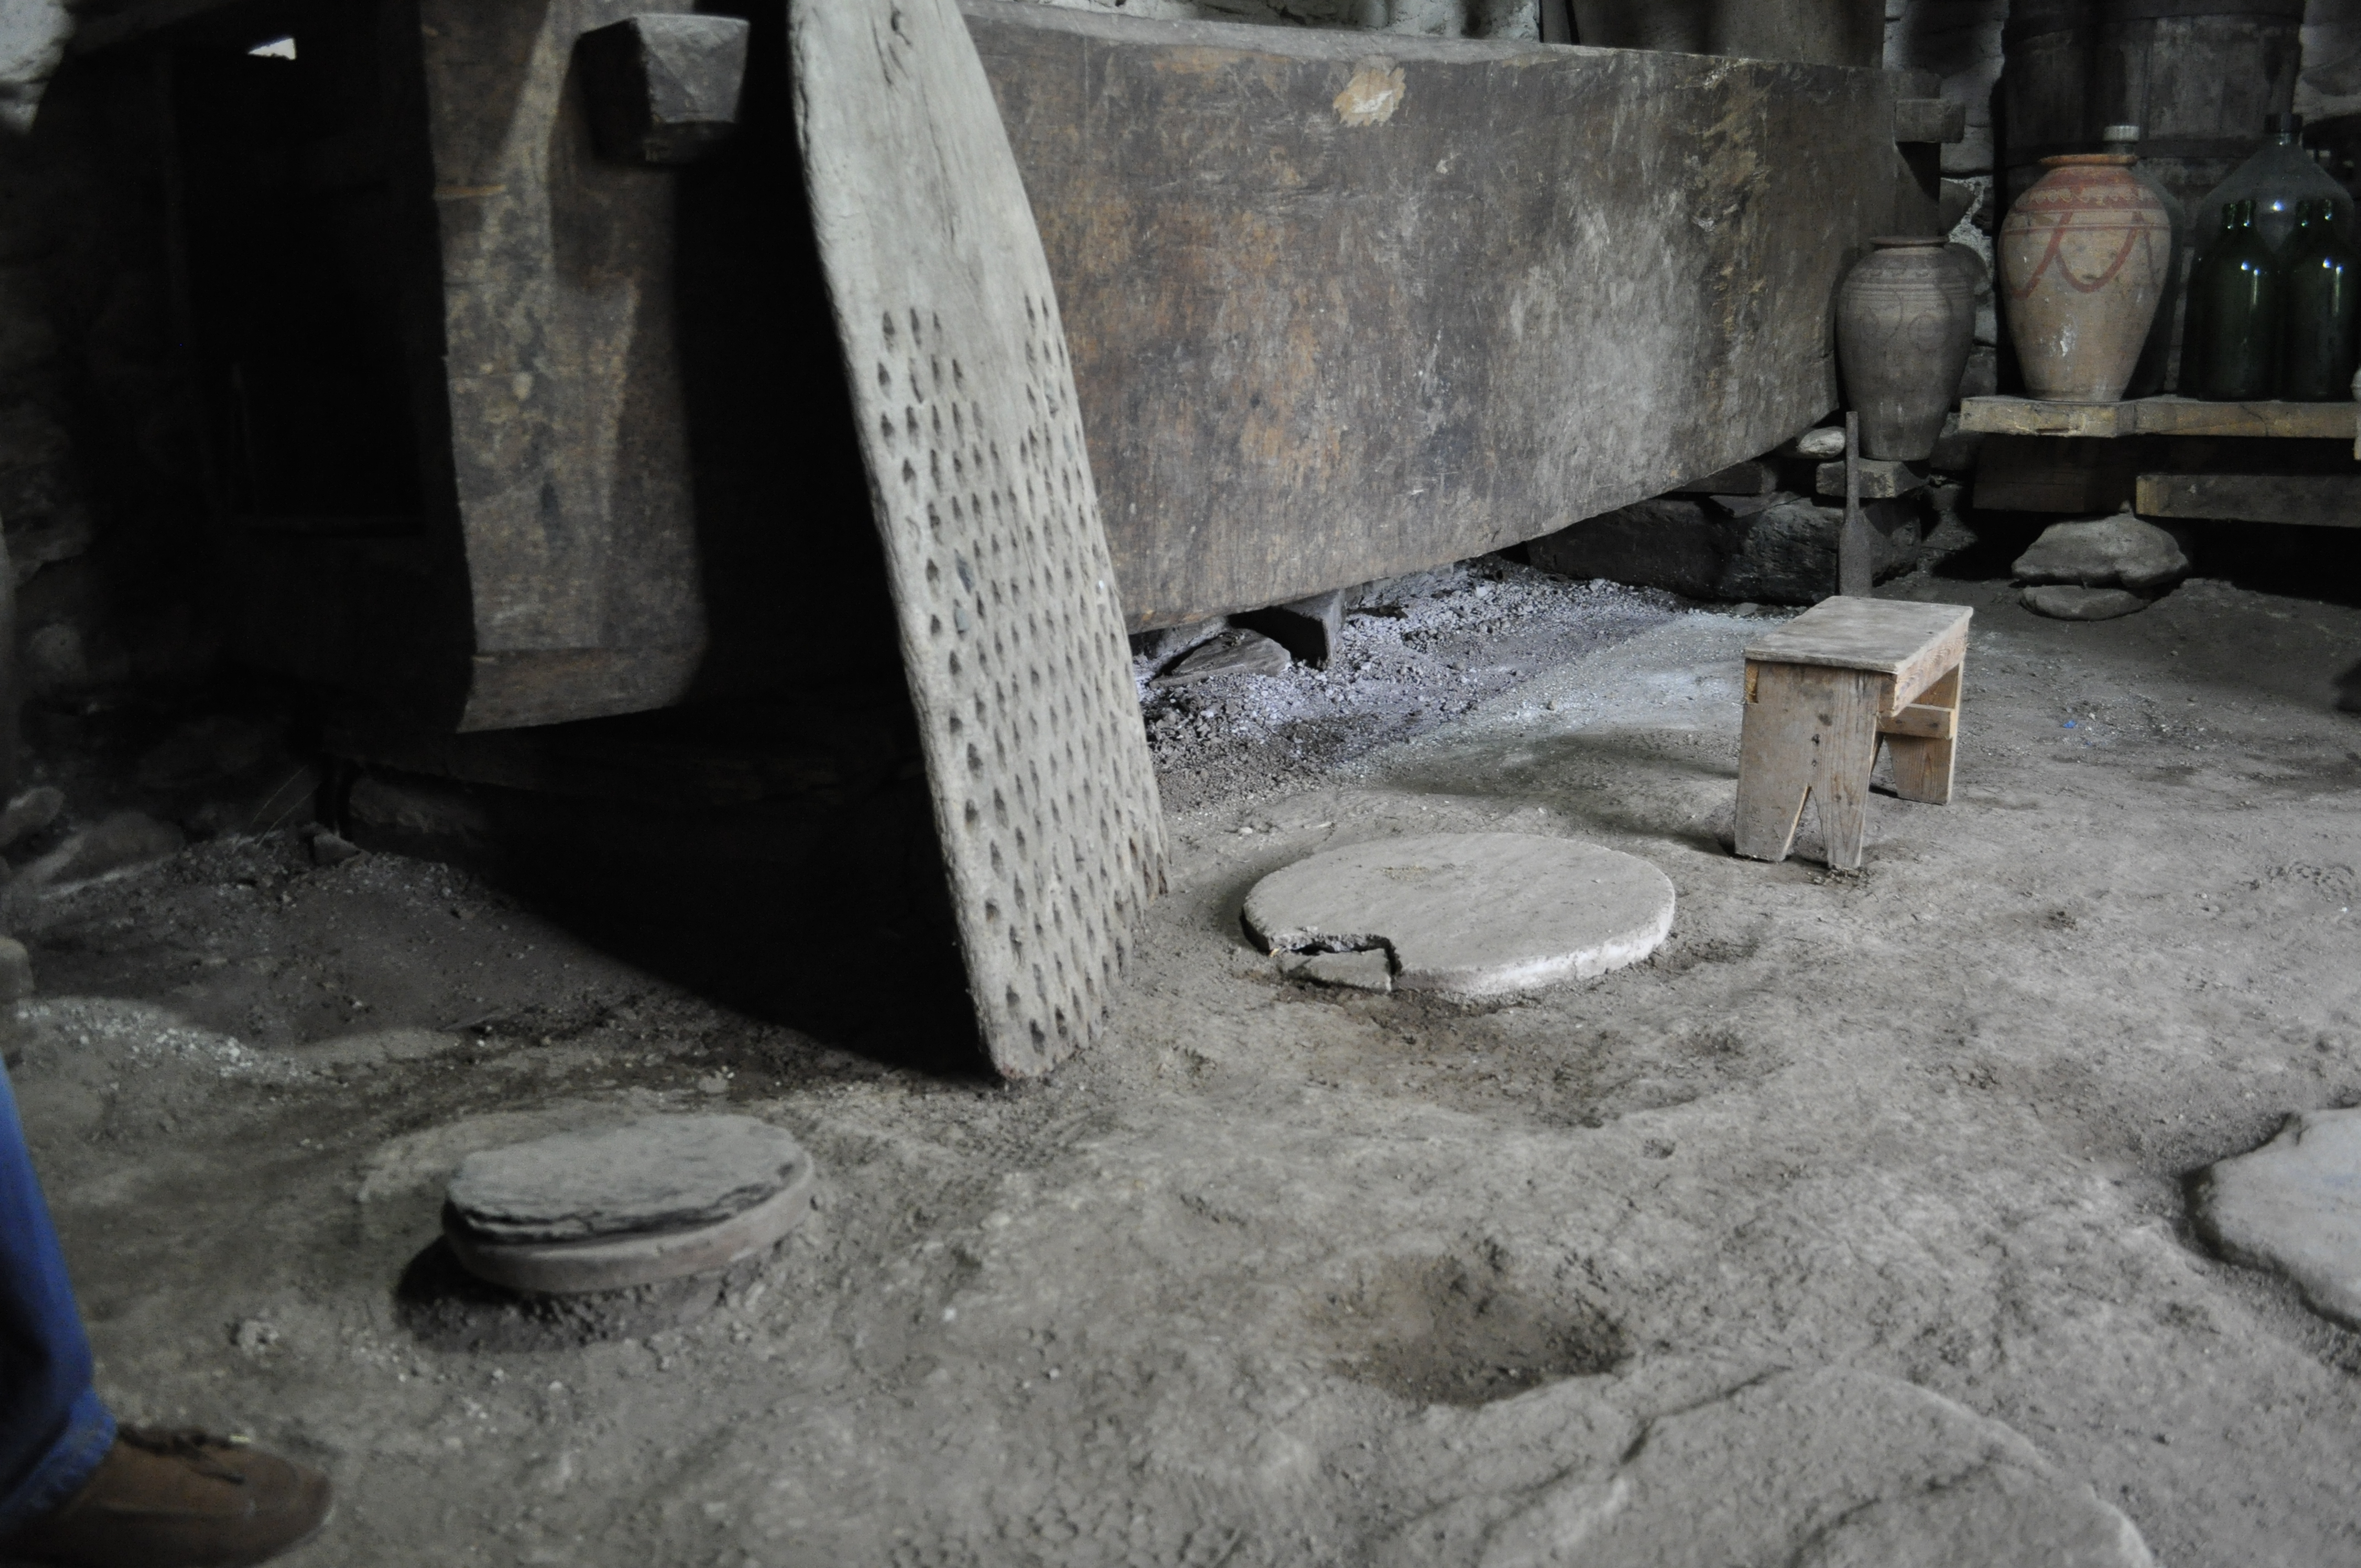 Cellar floor with details of jar (Kvevri) covers. The jars are used for winemaking. Detail of a tribulum for the threshing of cereals and a wine press, cellar (Marani), Kalaouri, Kakhétie region, Georgia, 18th century, October 2015